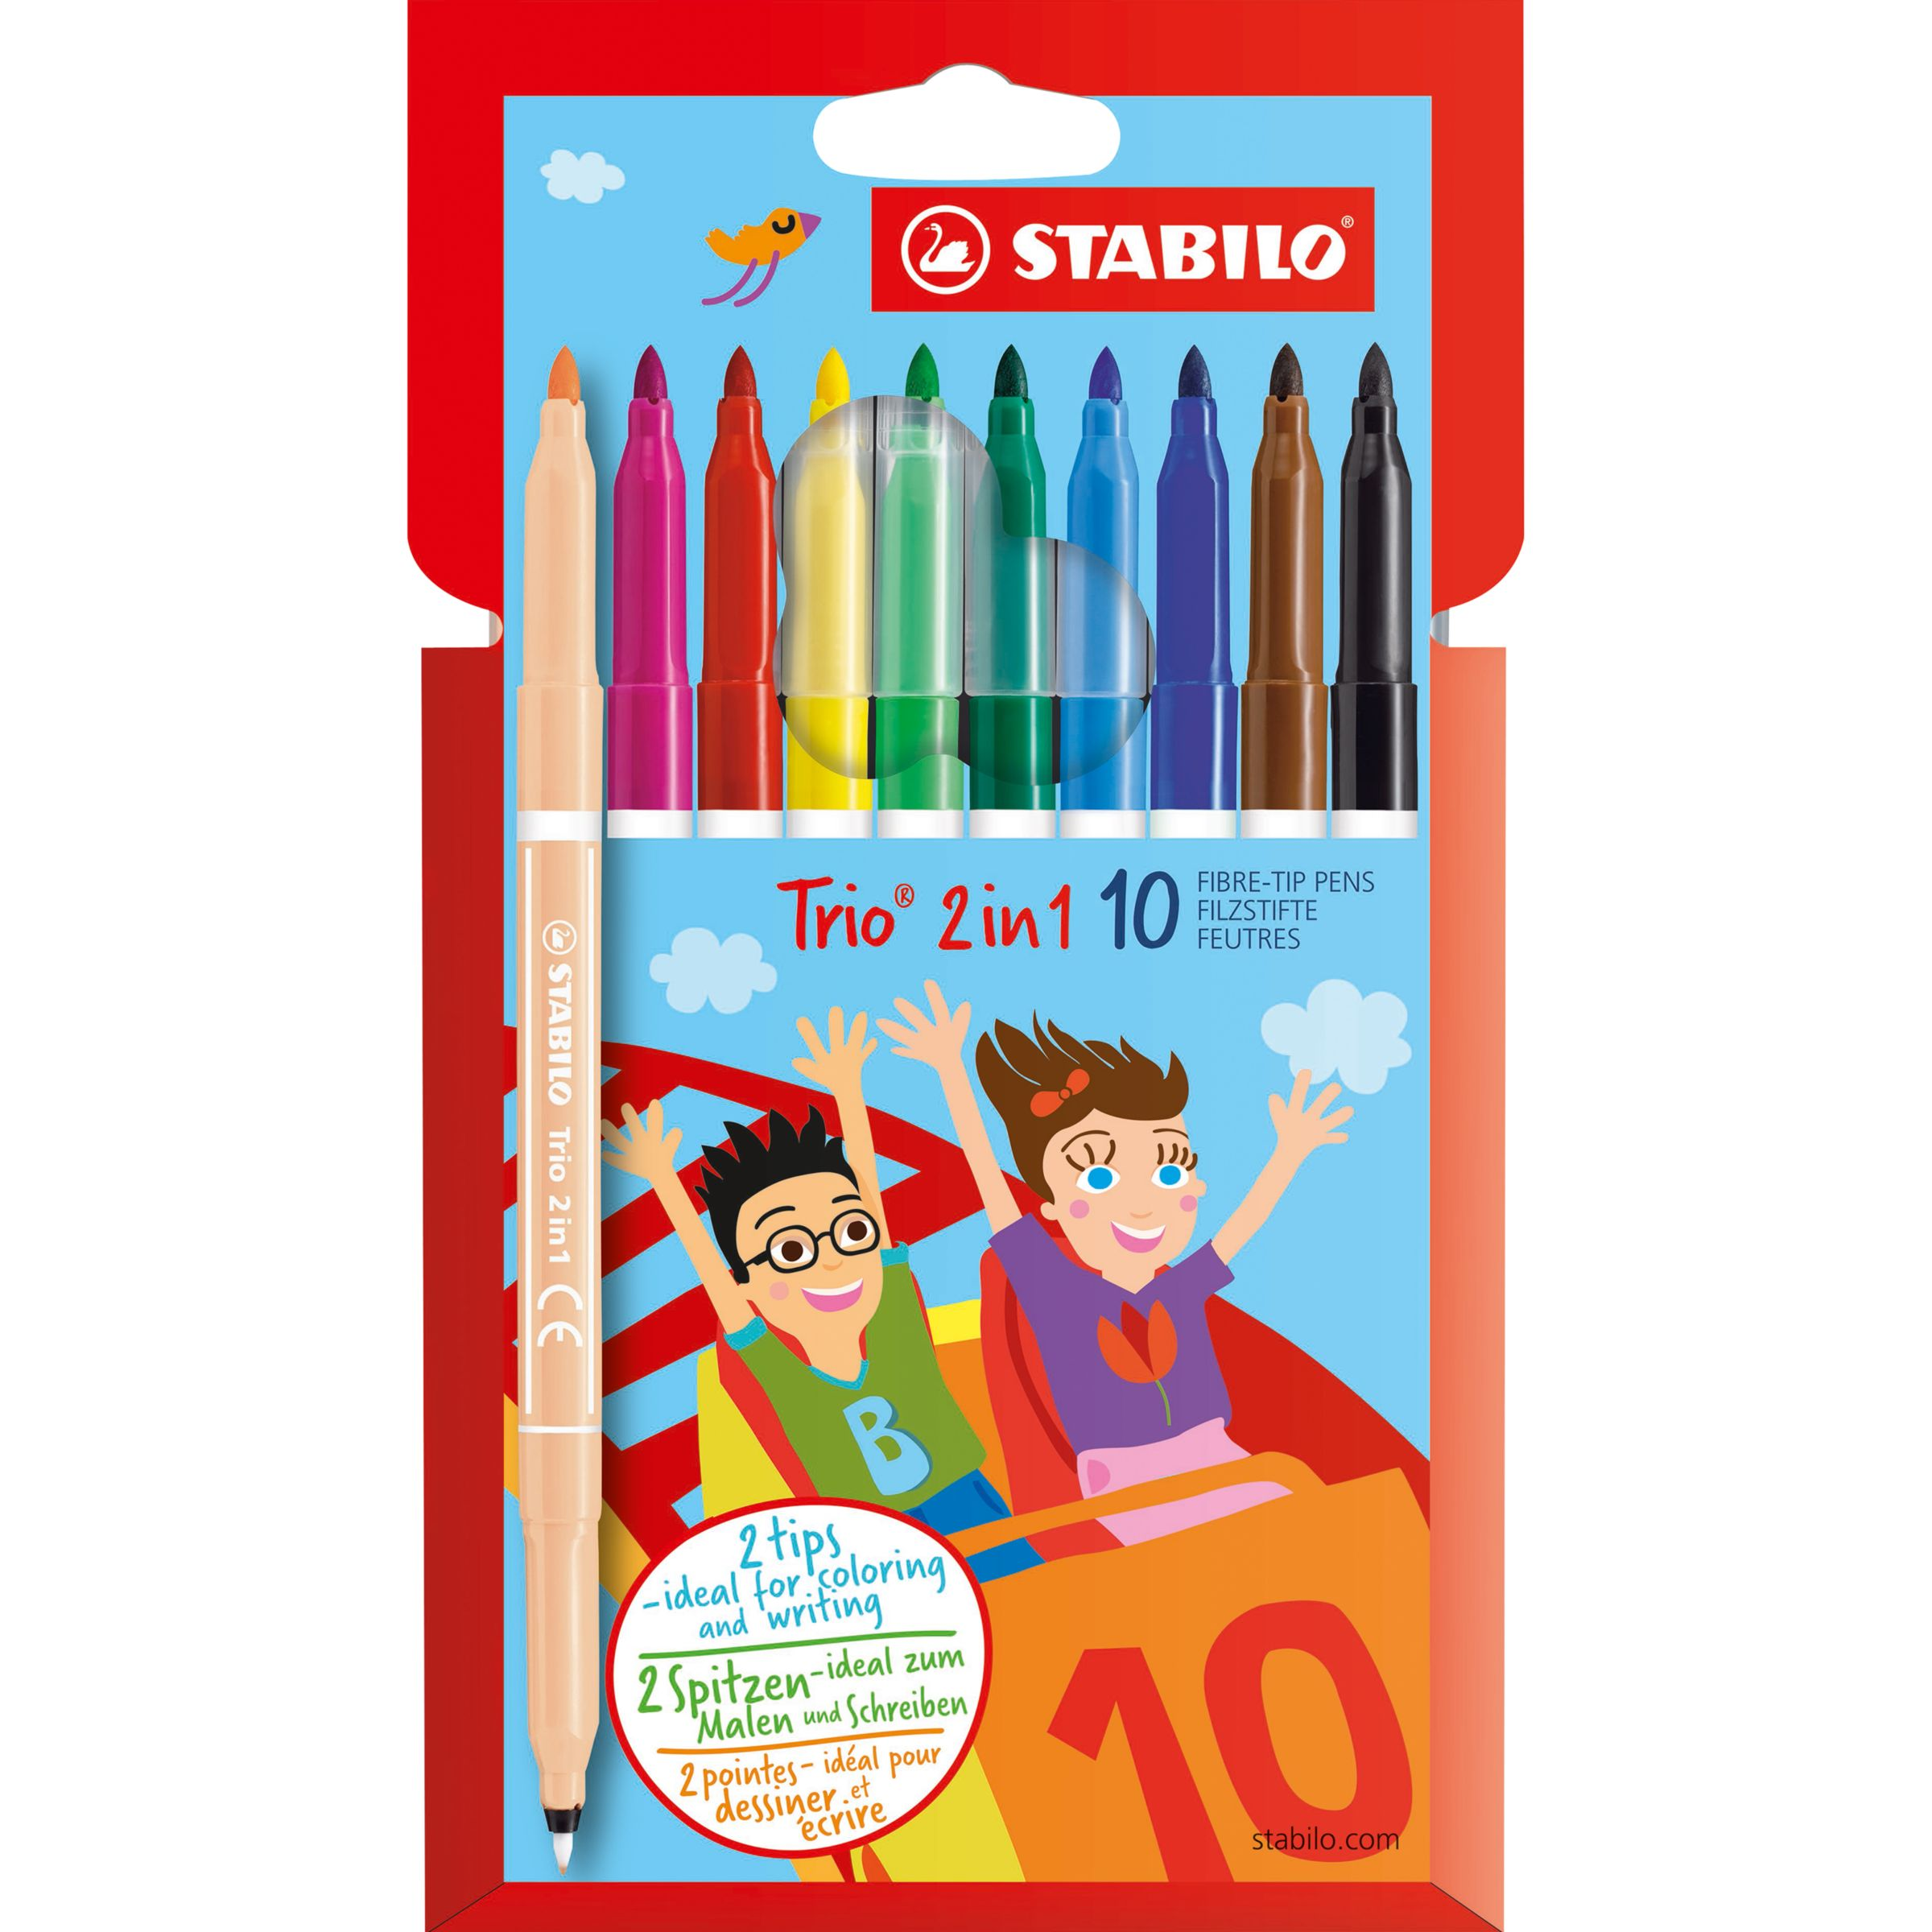 Stabilo Stabilo Trio 2 in 1 Double Ended Coloured Pens, Pack of 10